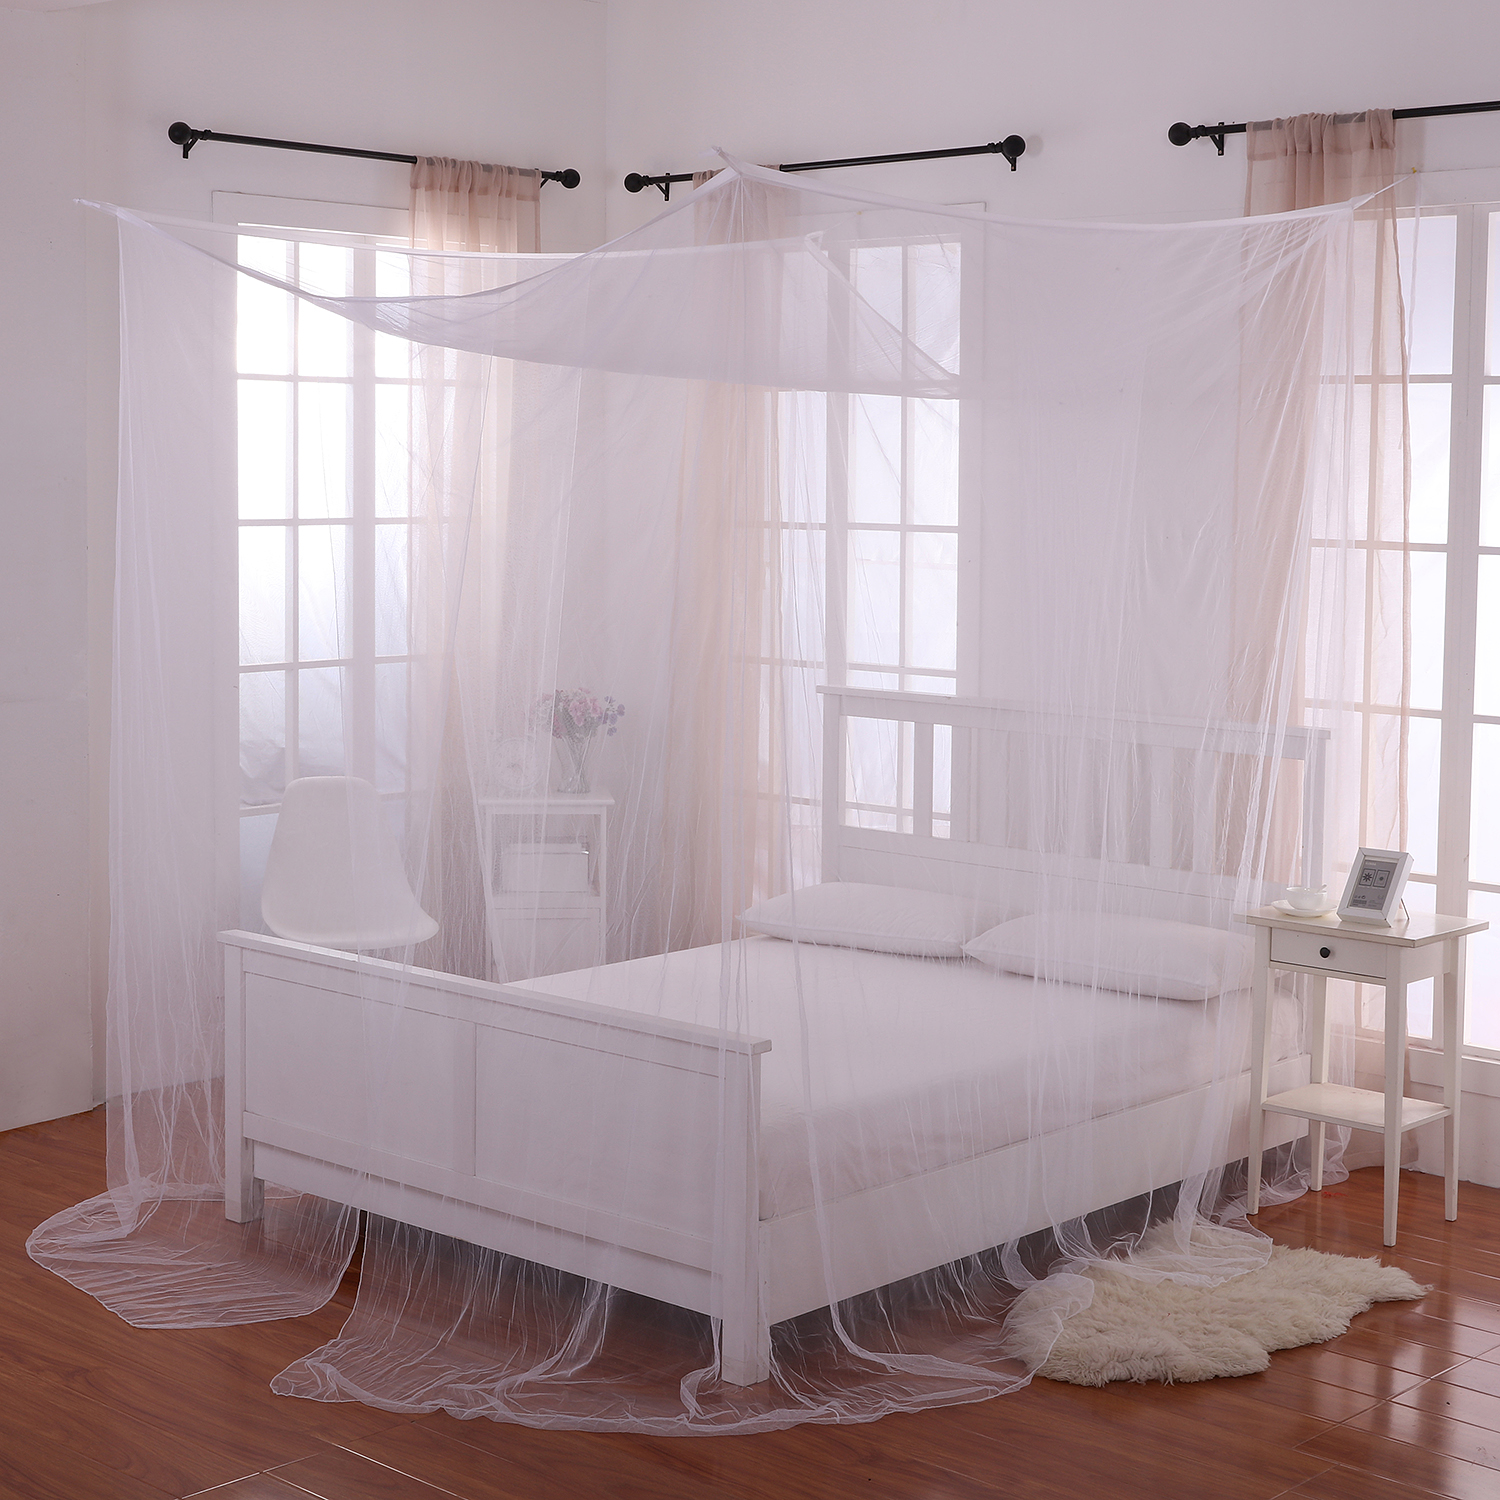 Four Post Bed Canopy palace 4-post bed sheer panel canopy - walmart